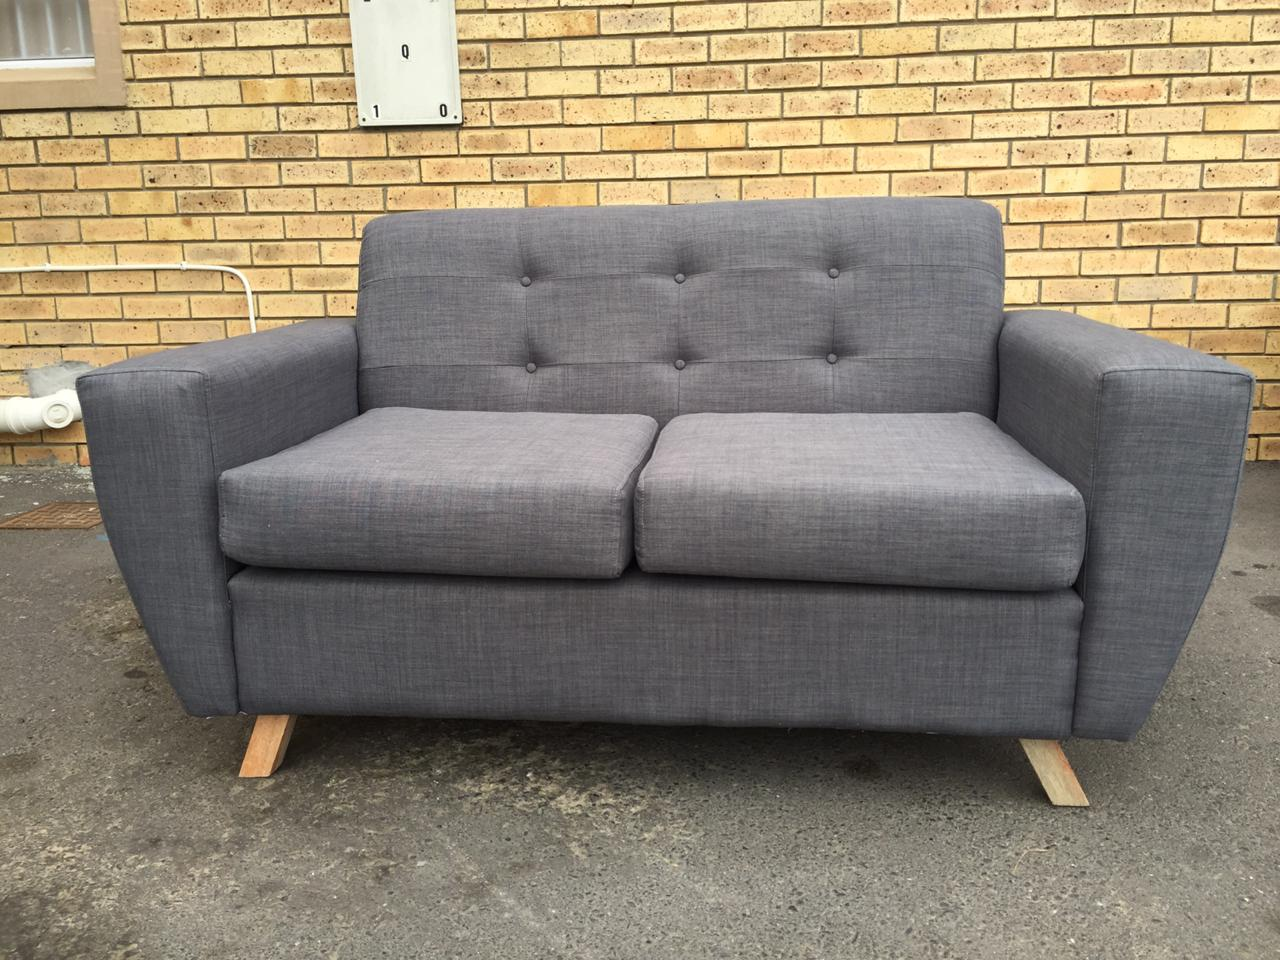 New Annabelle 2 Seater Sofa Couch 1 6m